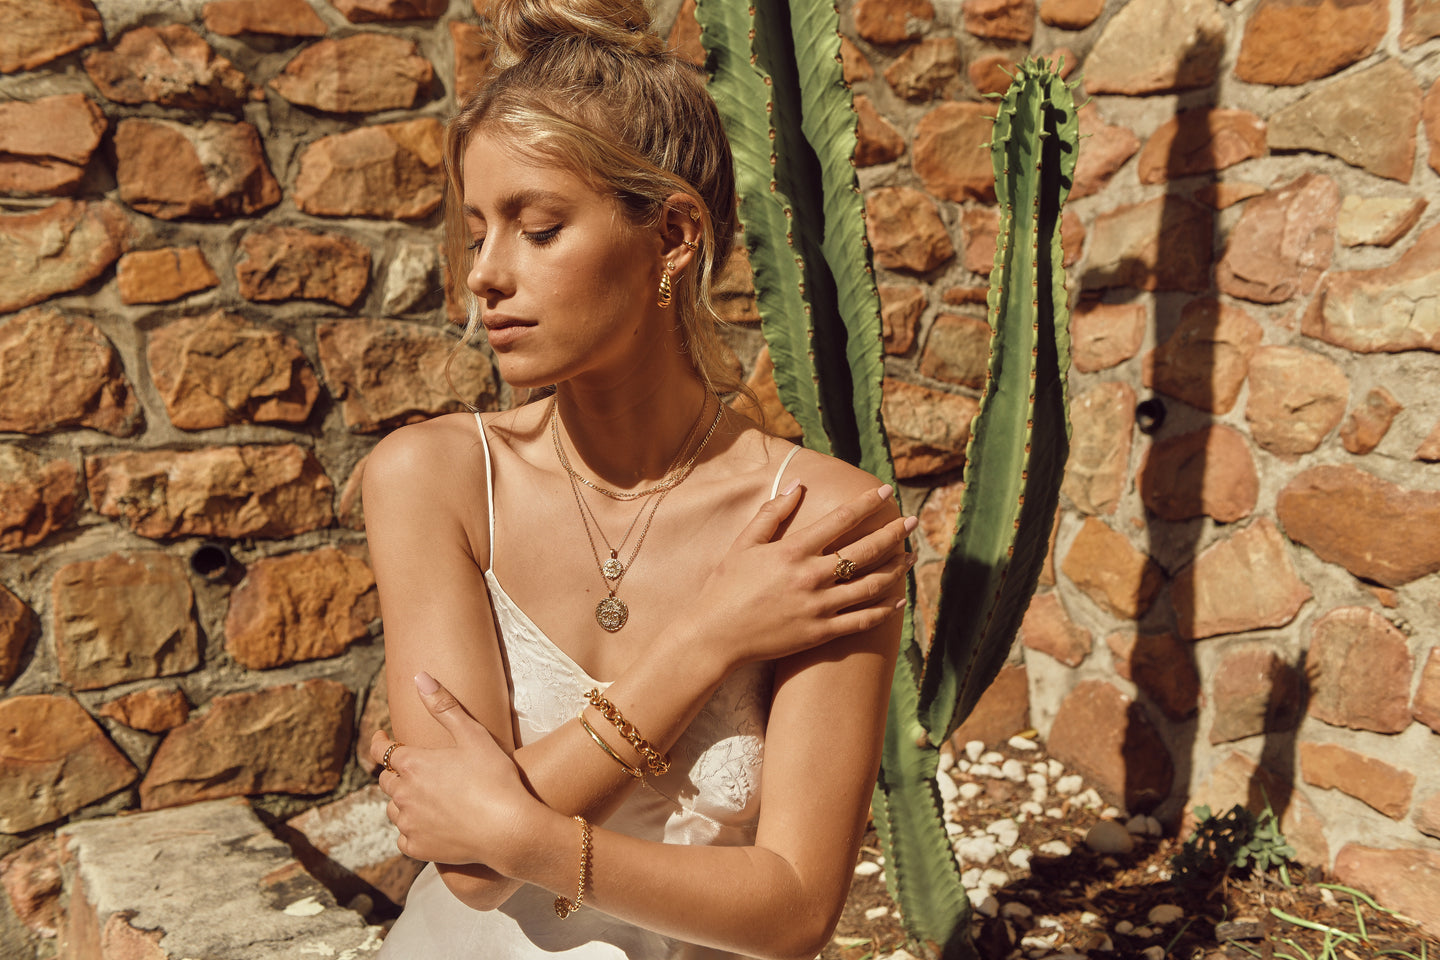 andrea wittenberg cape town boss models jewellery campaign ivy & lula gold vermeil